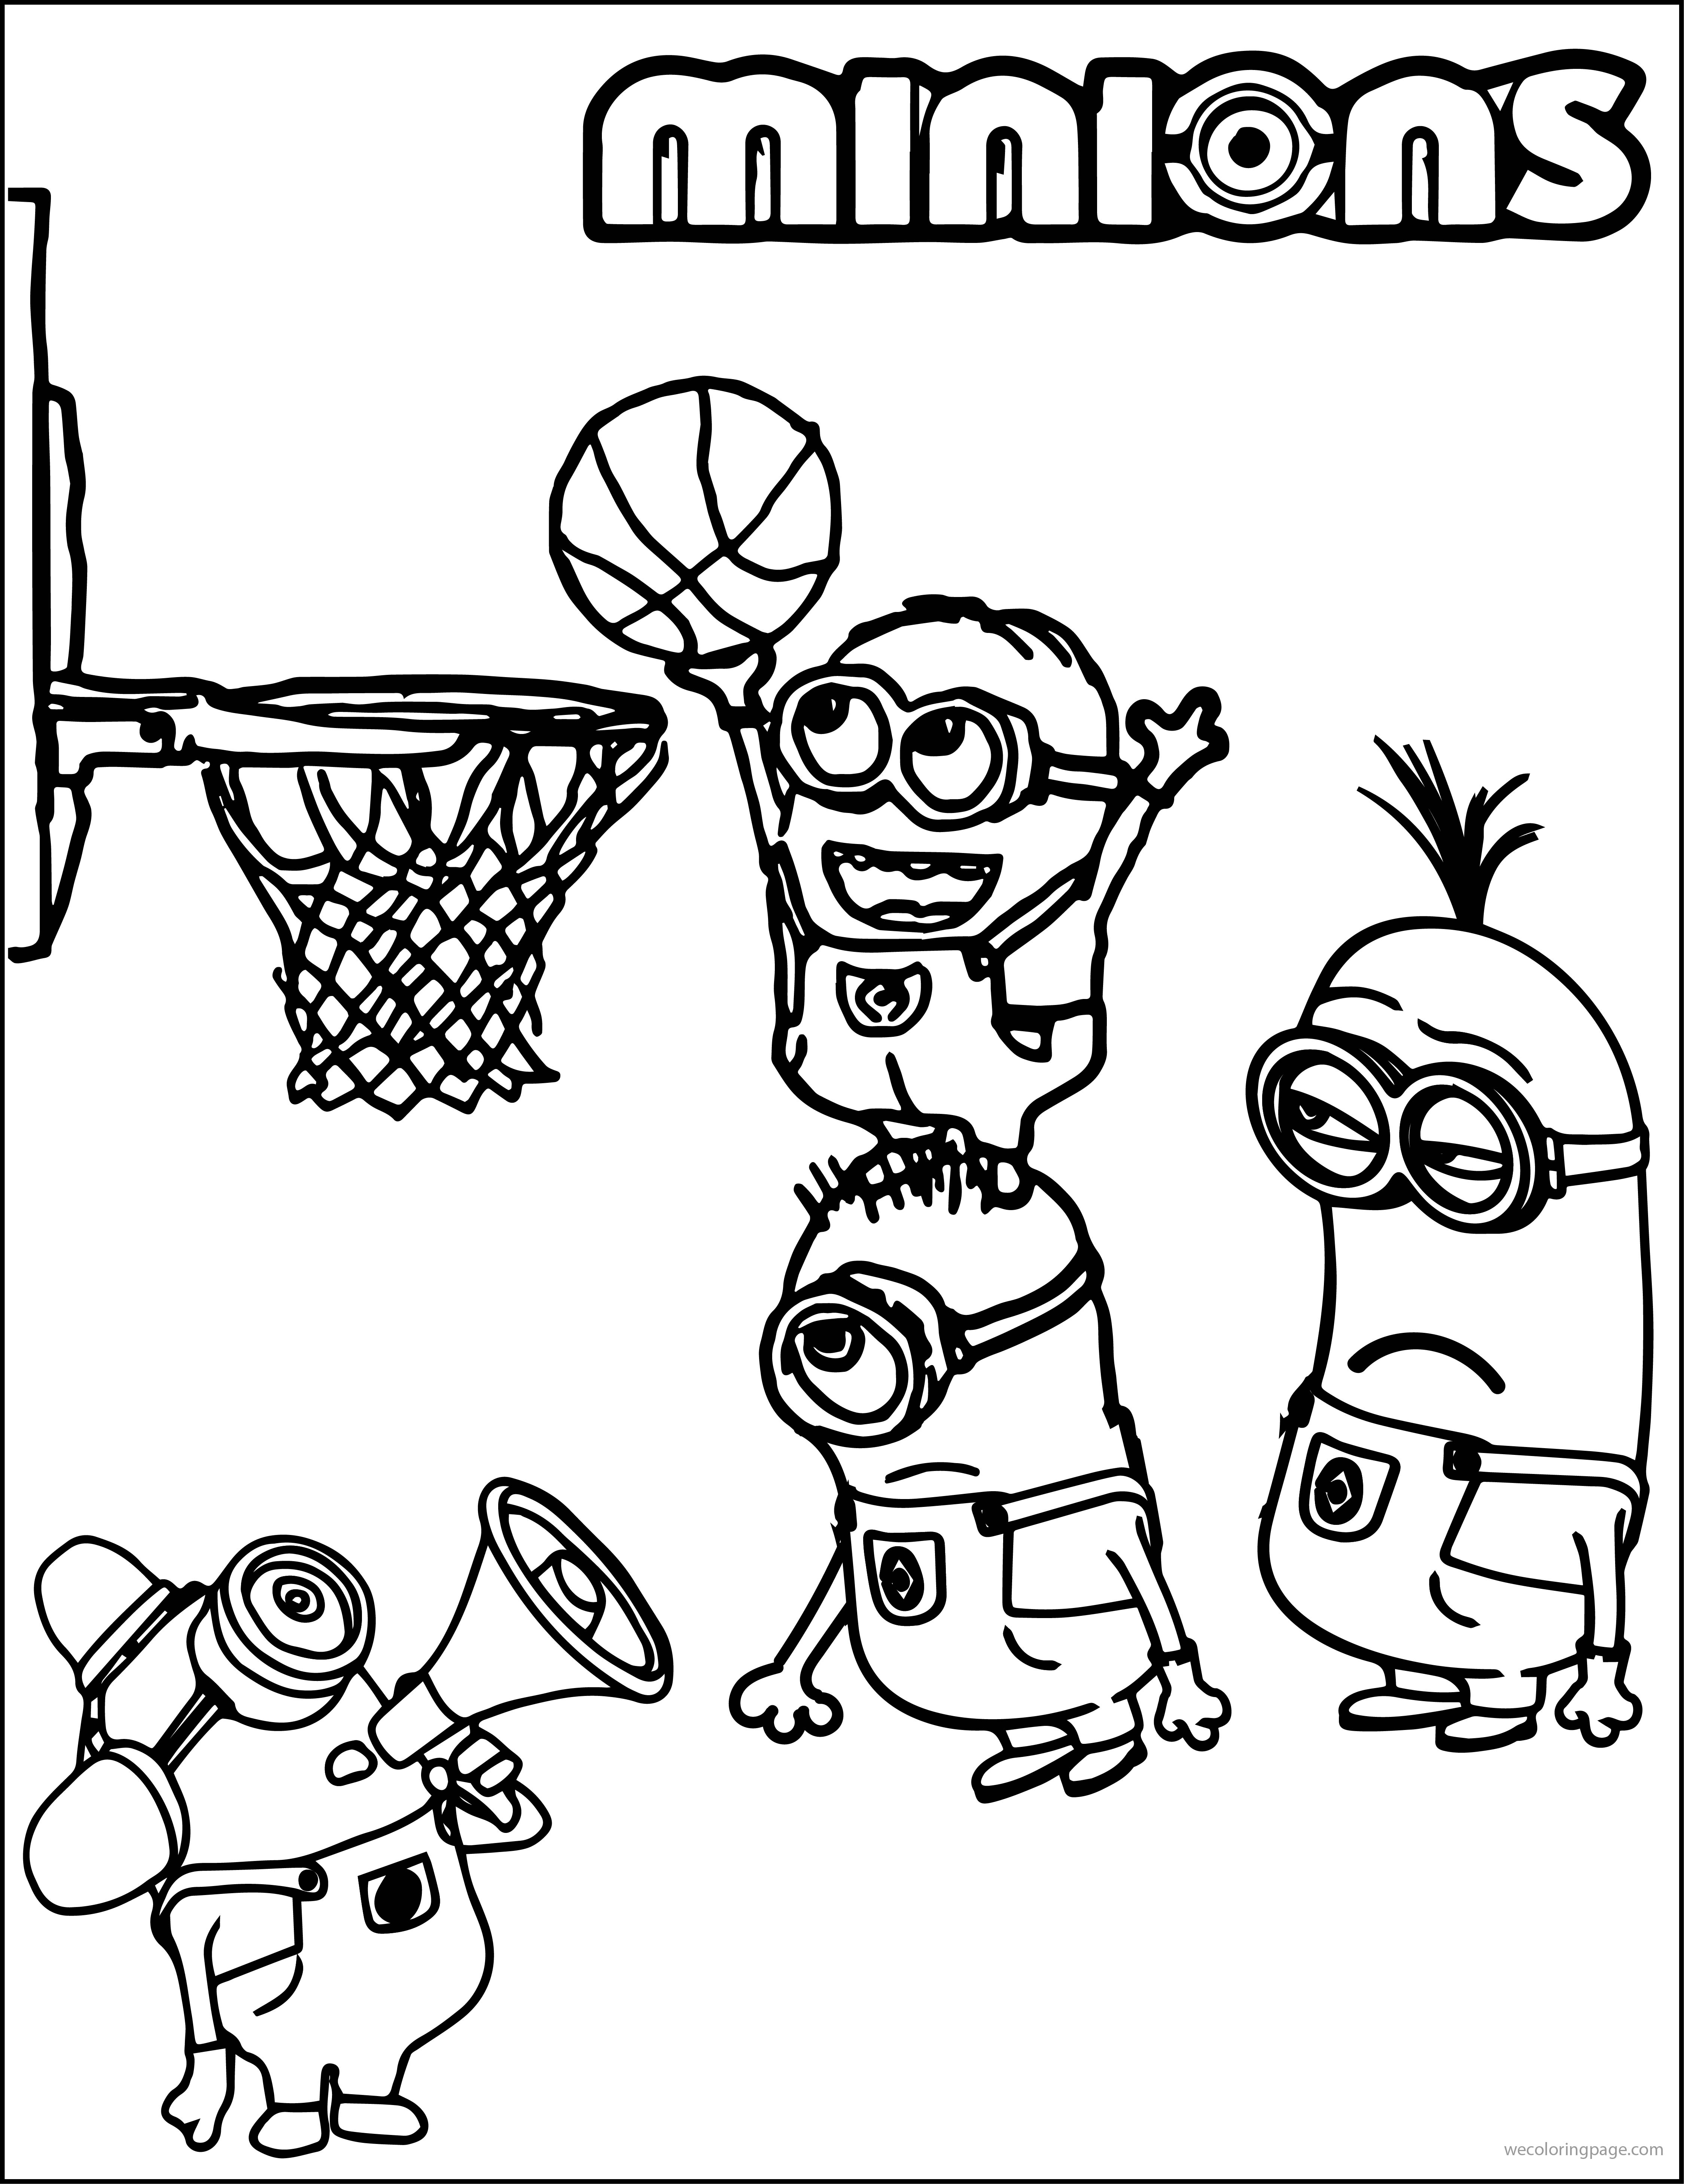 4499x5835 noted basketball coloring sheets sports pages 2 drawings printing - Basketball Pictures To Color 2